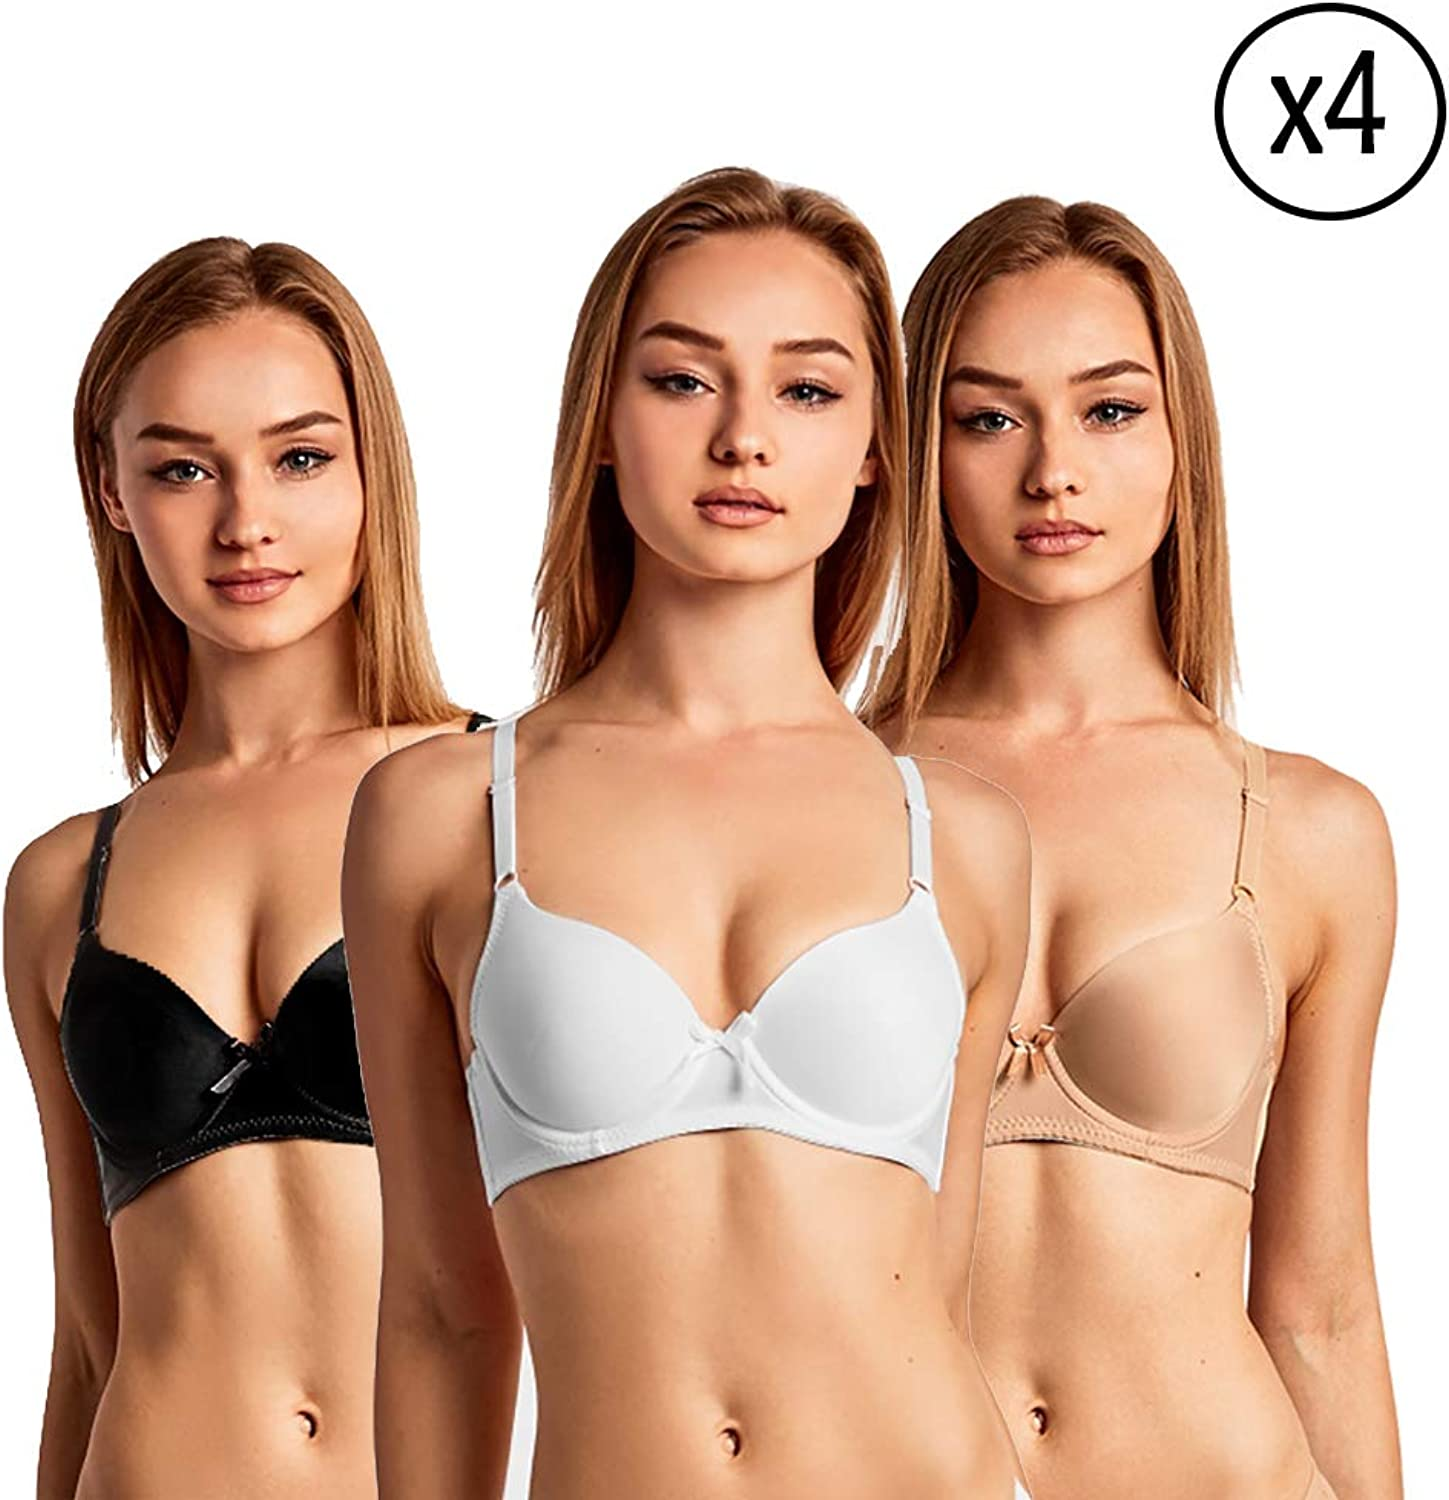 Daily Basic Women Solid colors TShirt Full Cup Bra  12 Pack